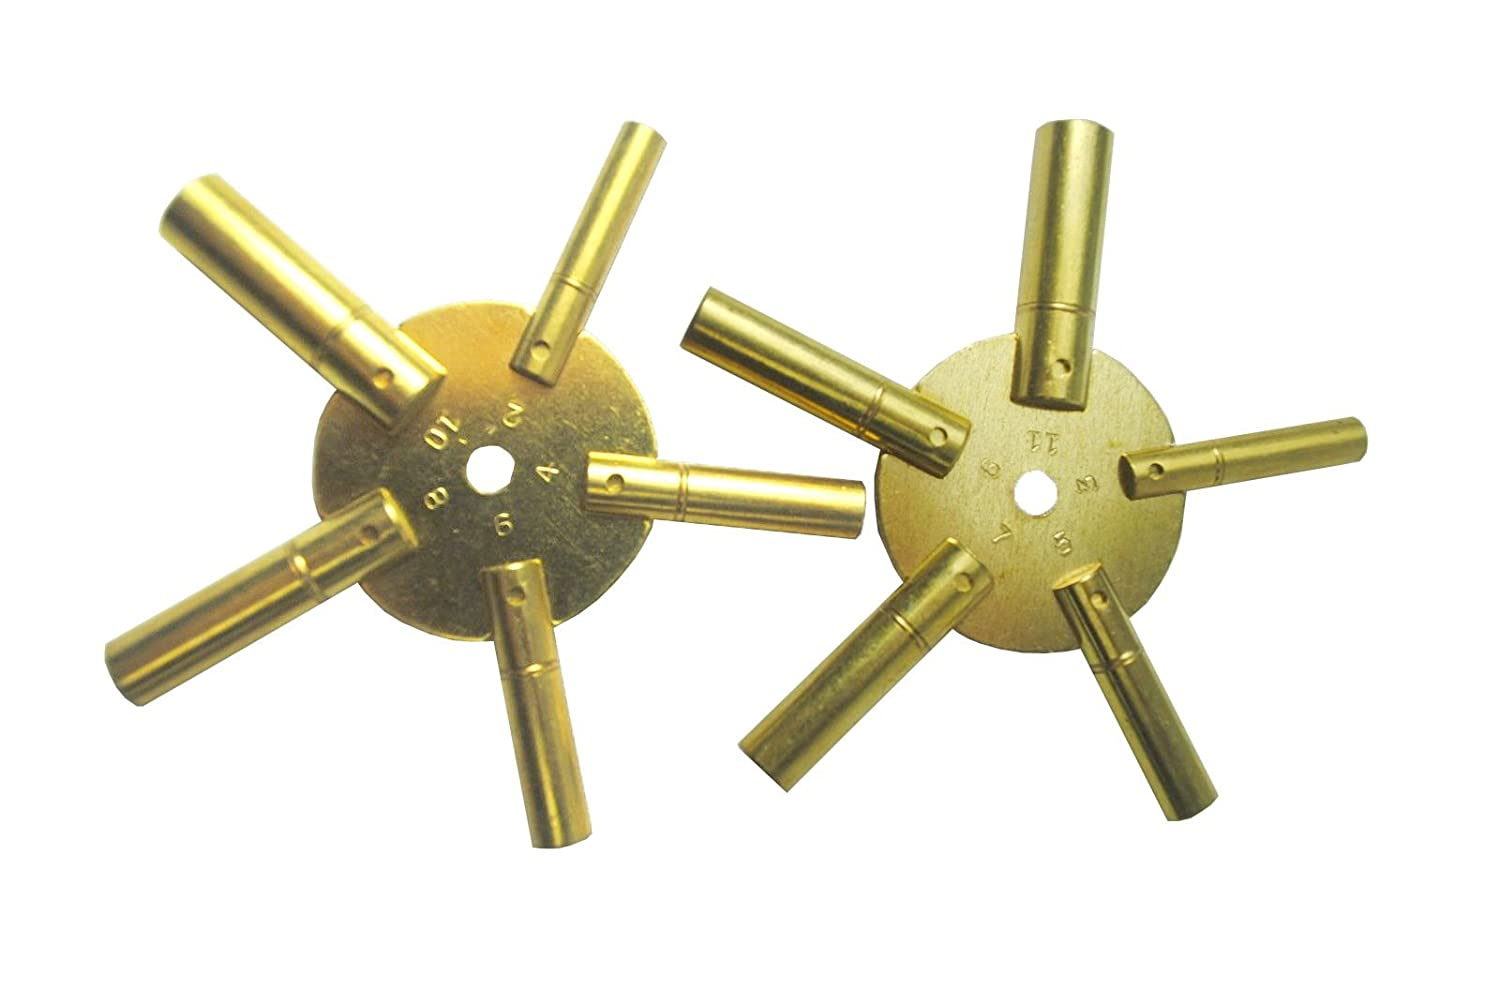 Brass Blessing 10 Size Solid Brass Clock Winding Keys 5 Odd 5 Even Sizes 2 to 11 from 5025